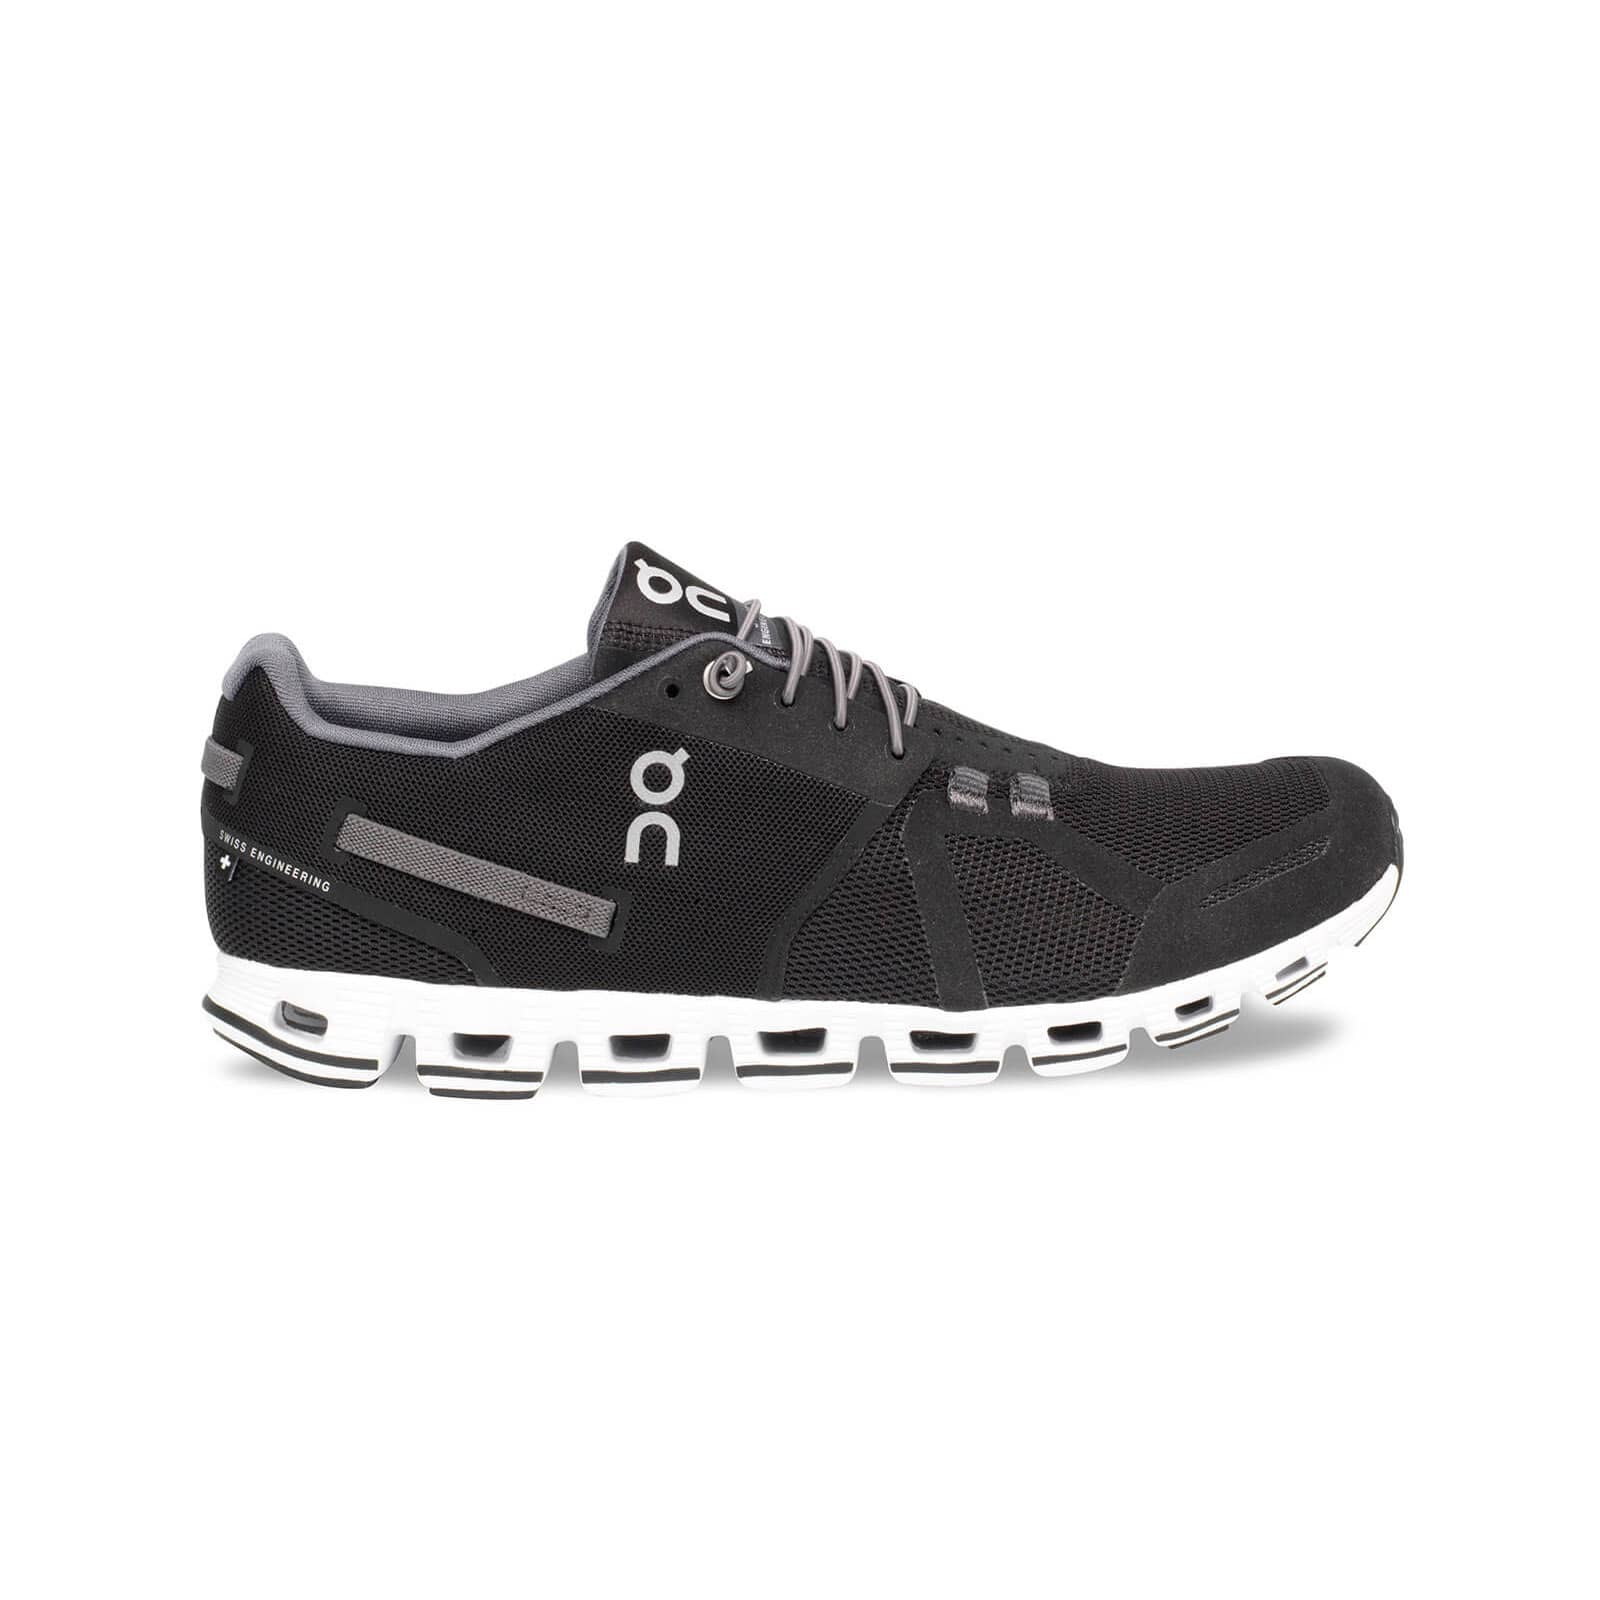 On Cloud Classic Black/White running shoe for active life, road, training,